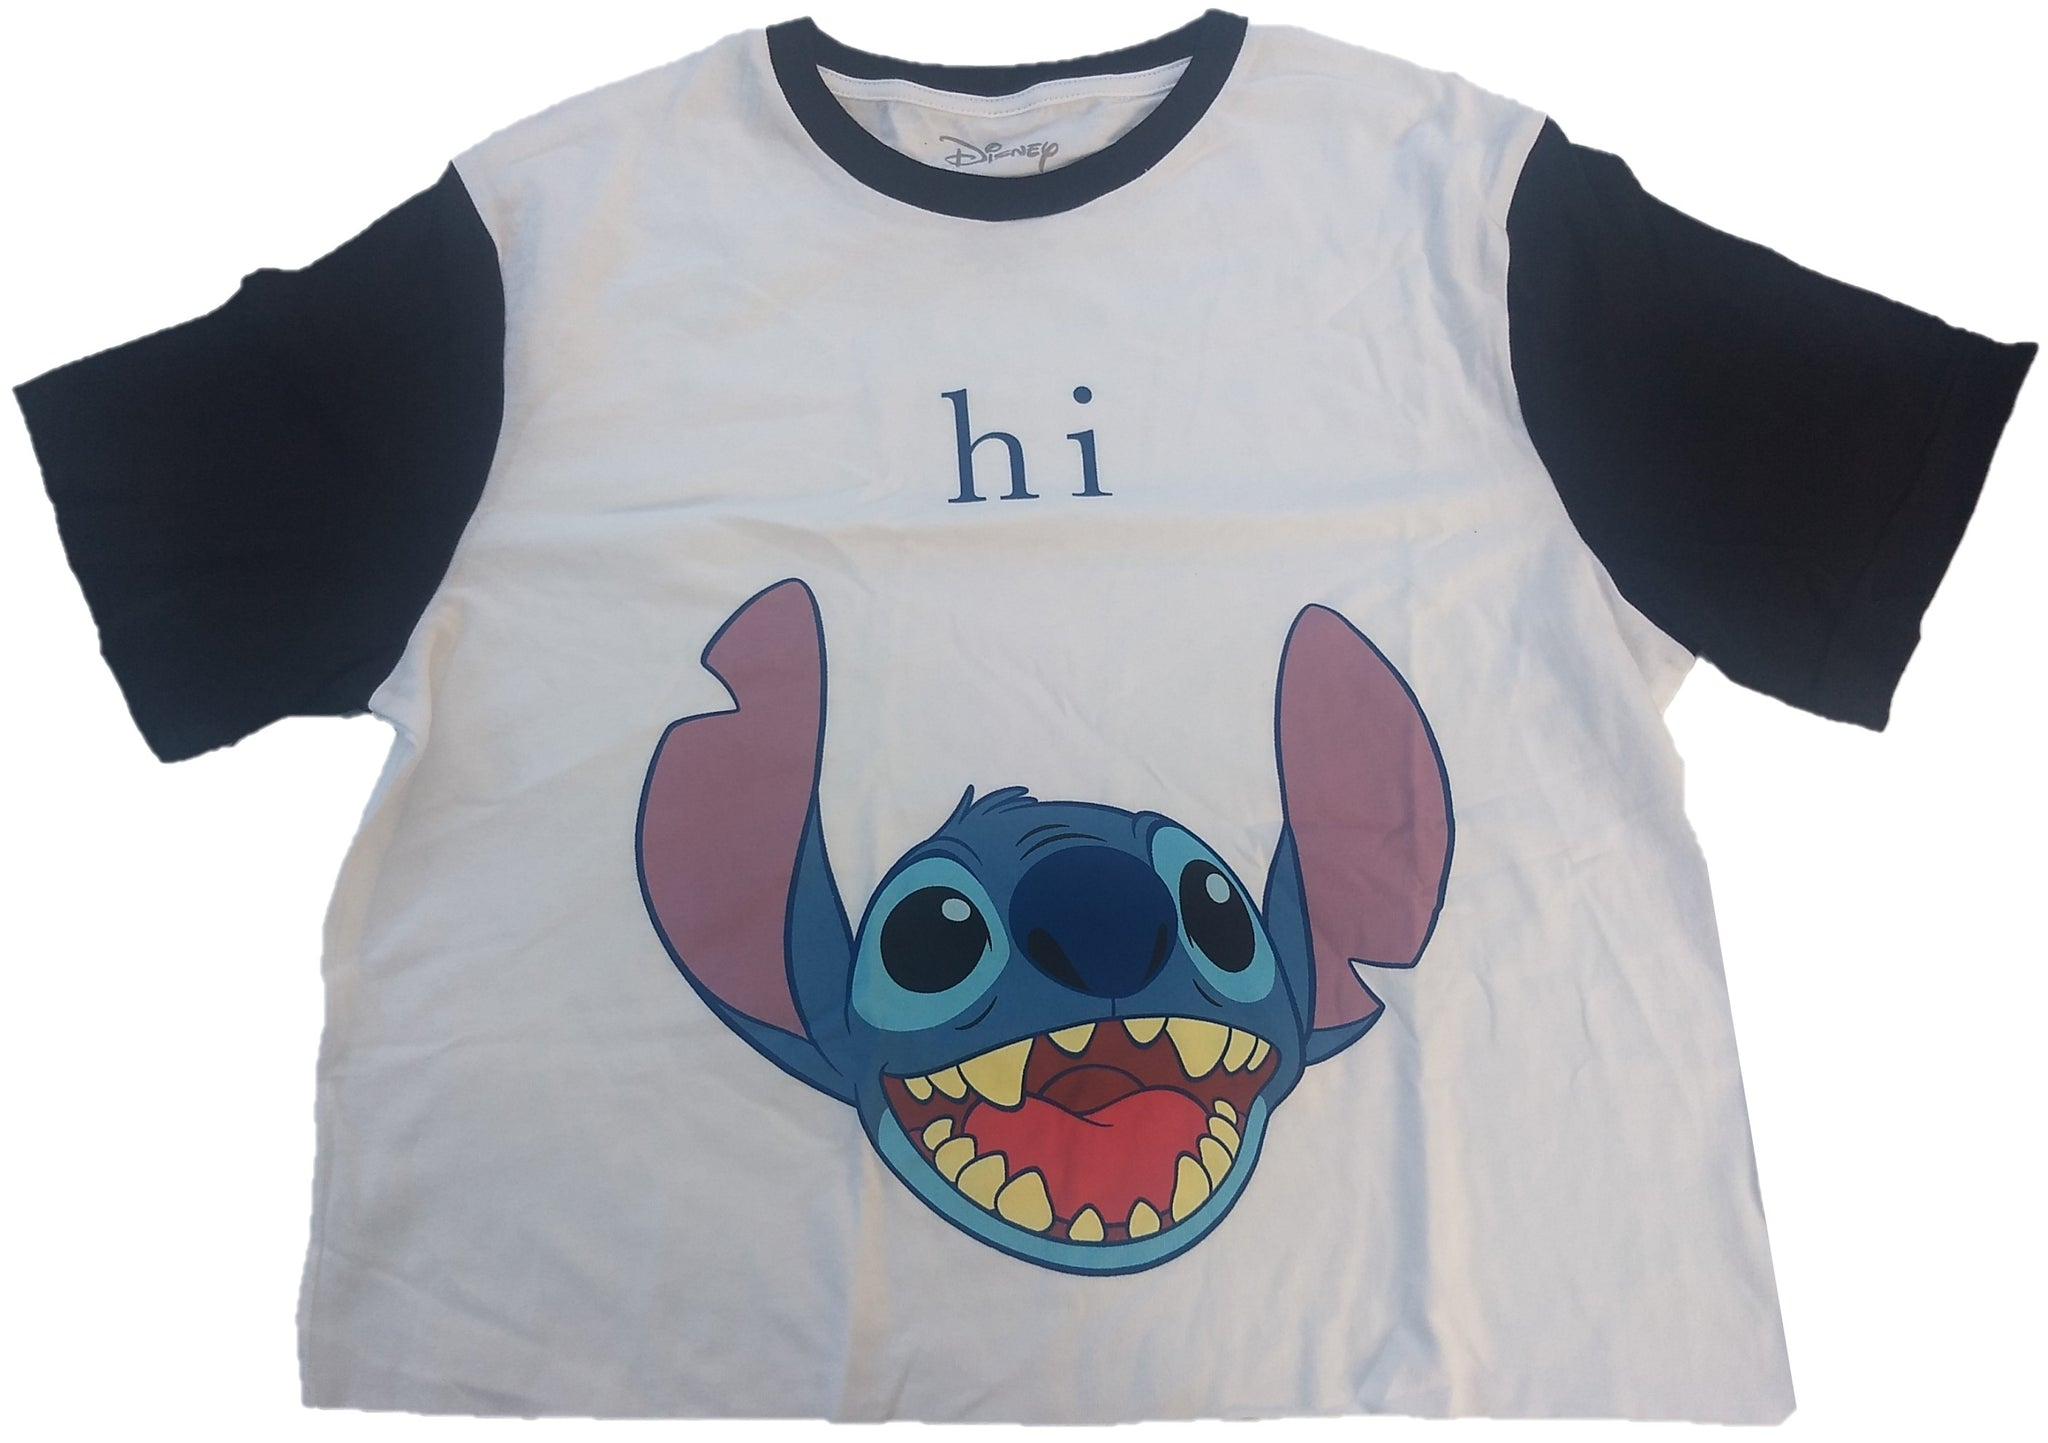 Stitch Disney Hi Crop Top Womens T-Shirt